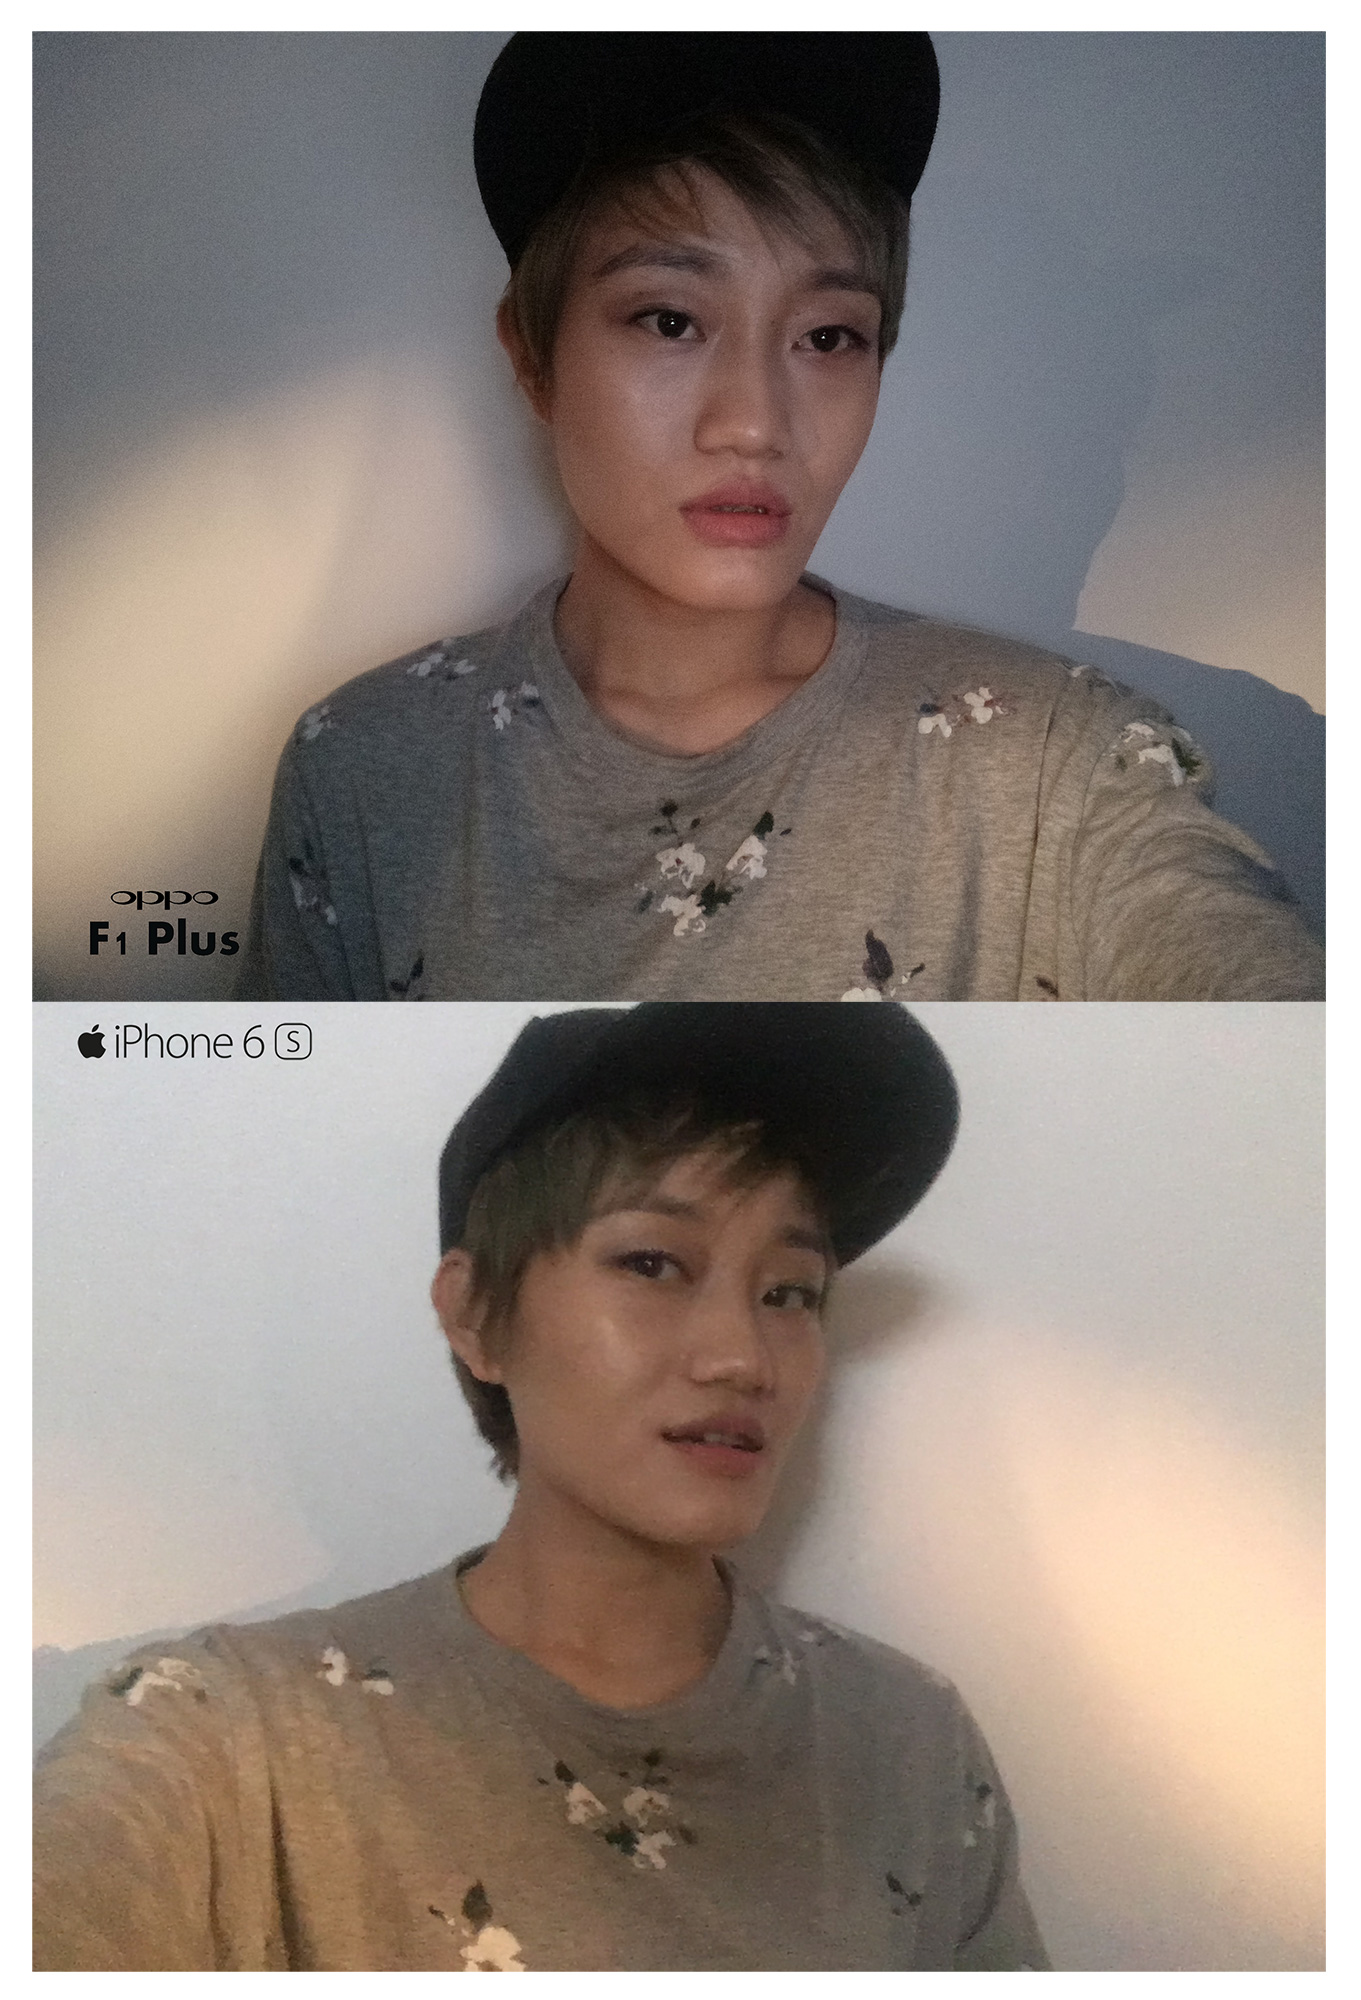 OPPO F1 Plus Vs iPhone 6s-Front-Camera-Low-Light